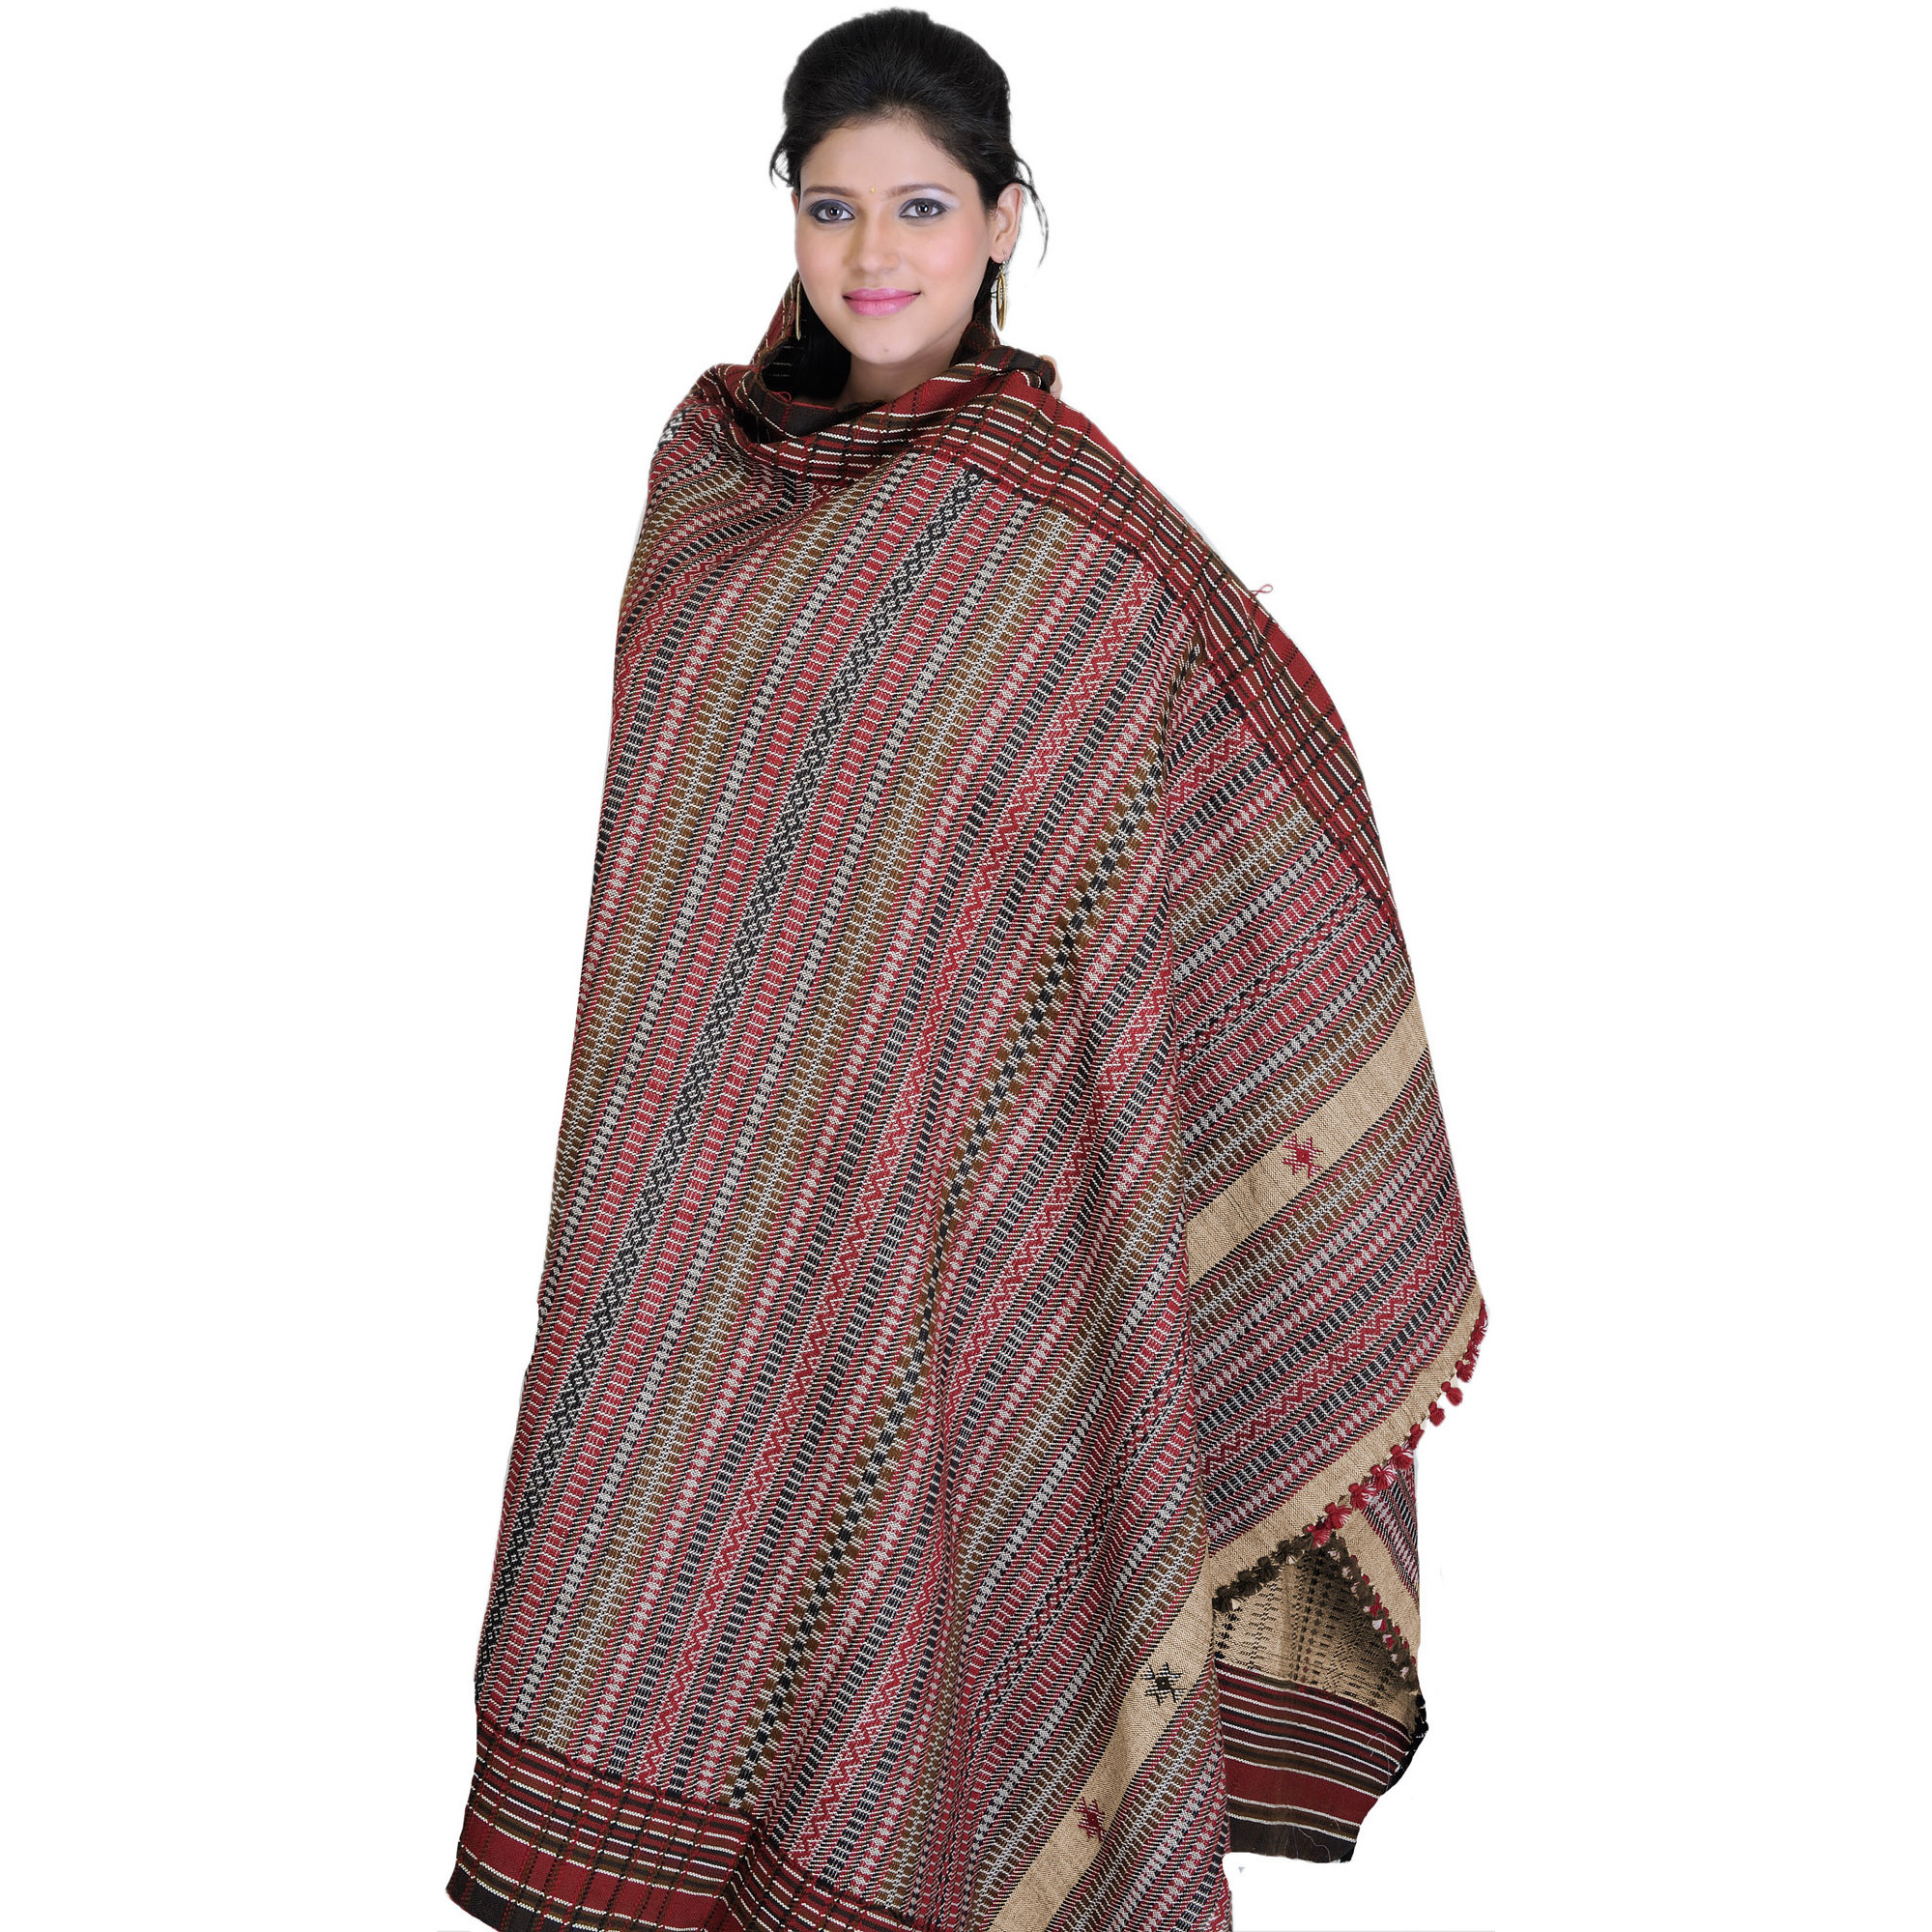 Stucco-Brown Shawl from Kutch with All-Over Weave